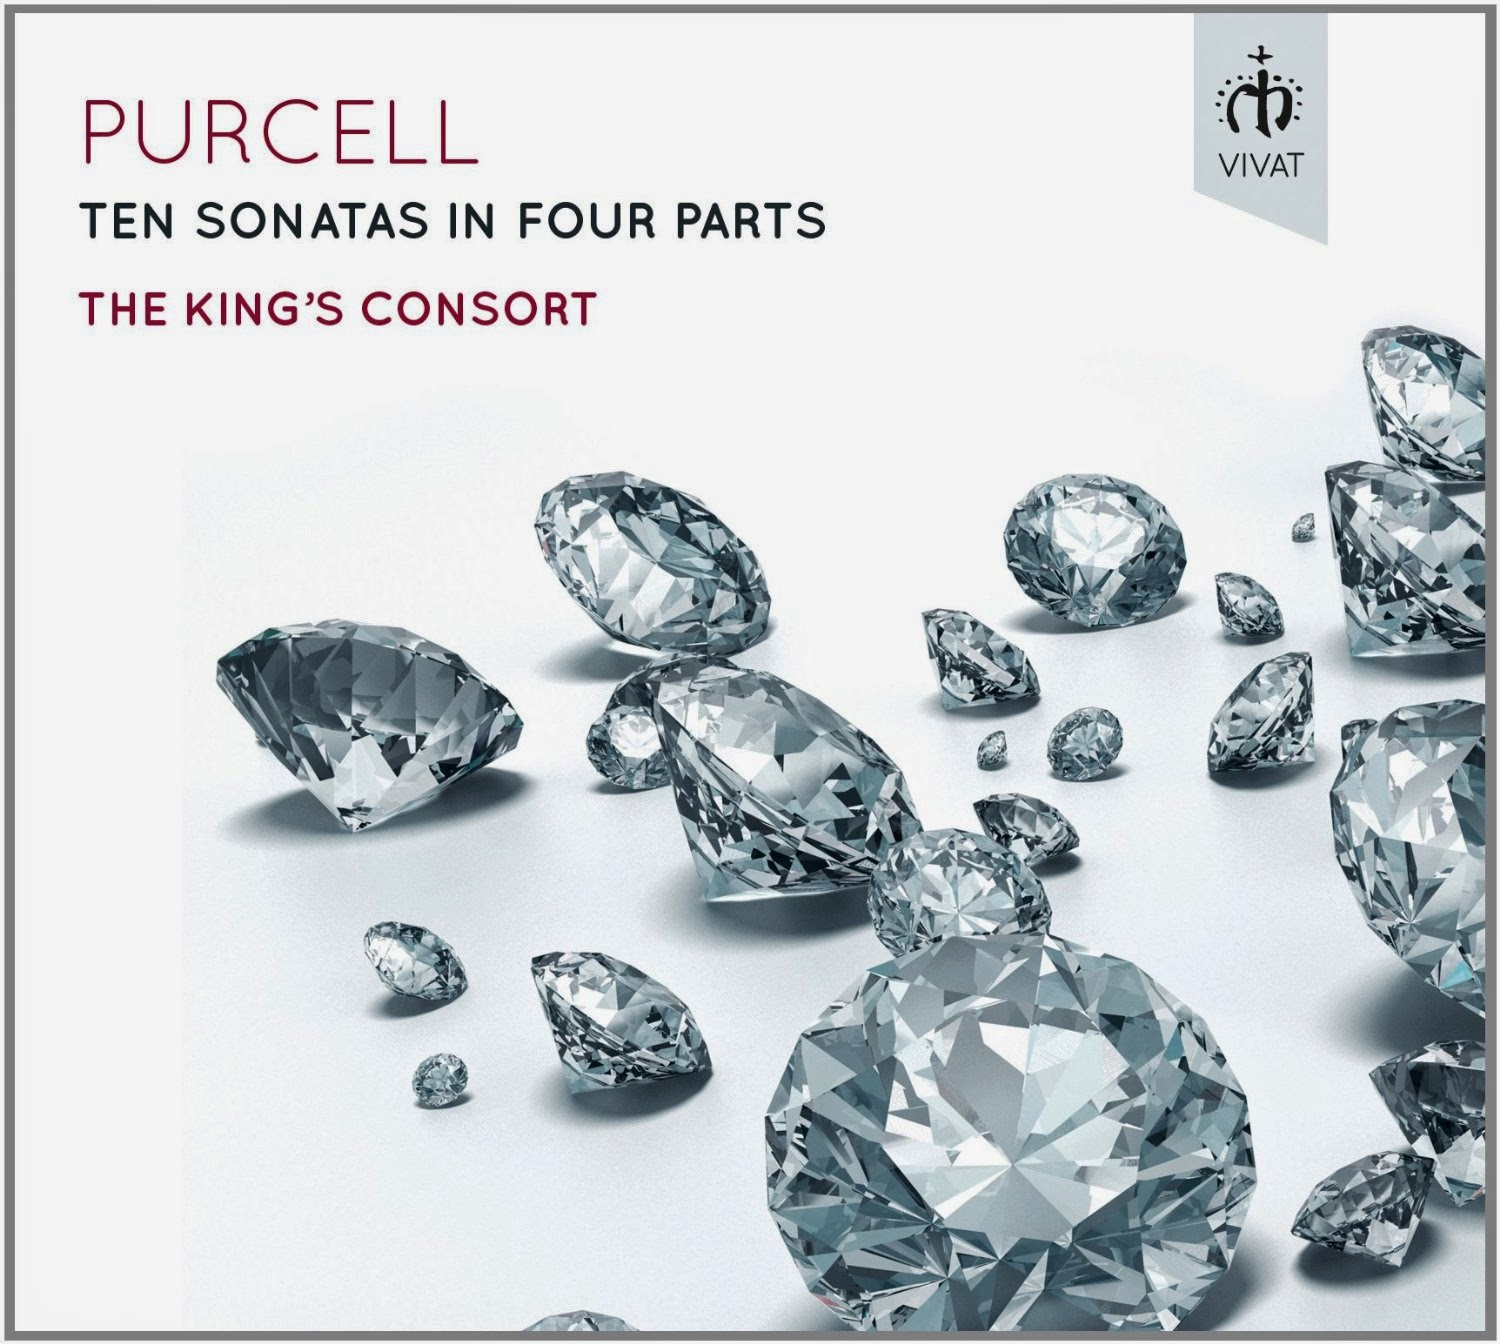 Purcell - Ten Sonatas in Four Parts